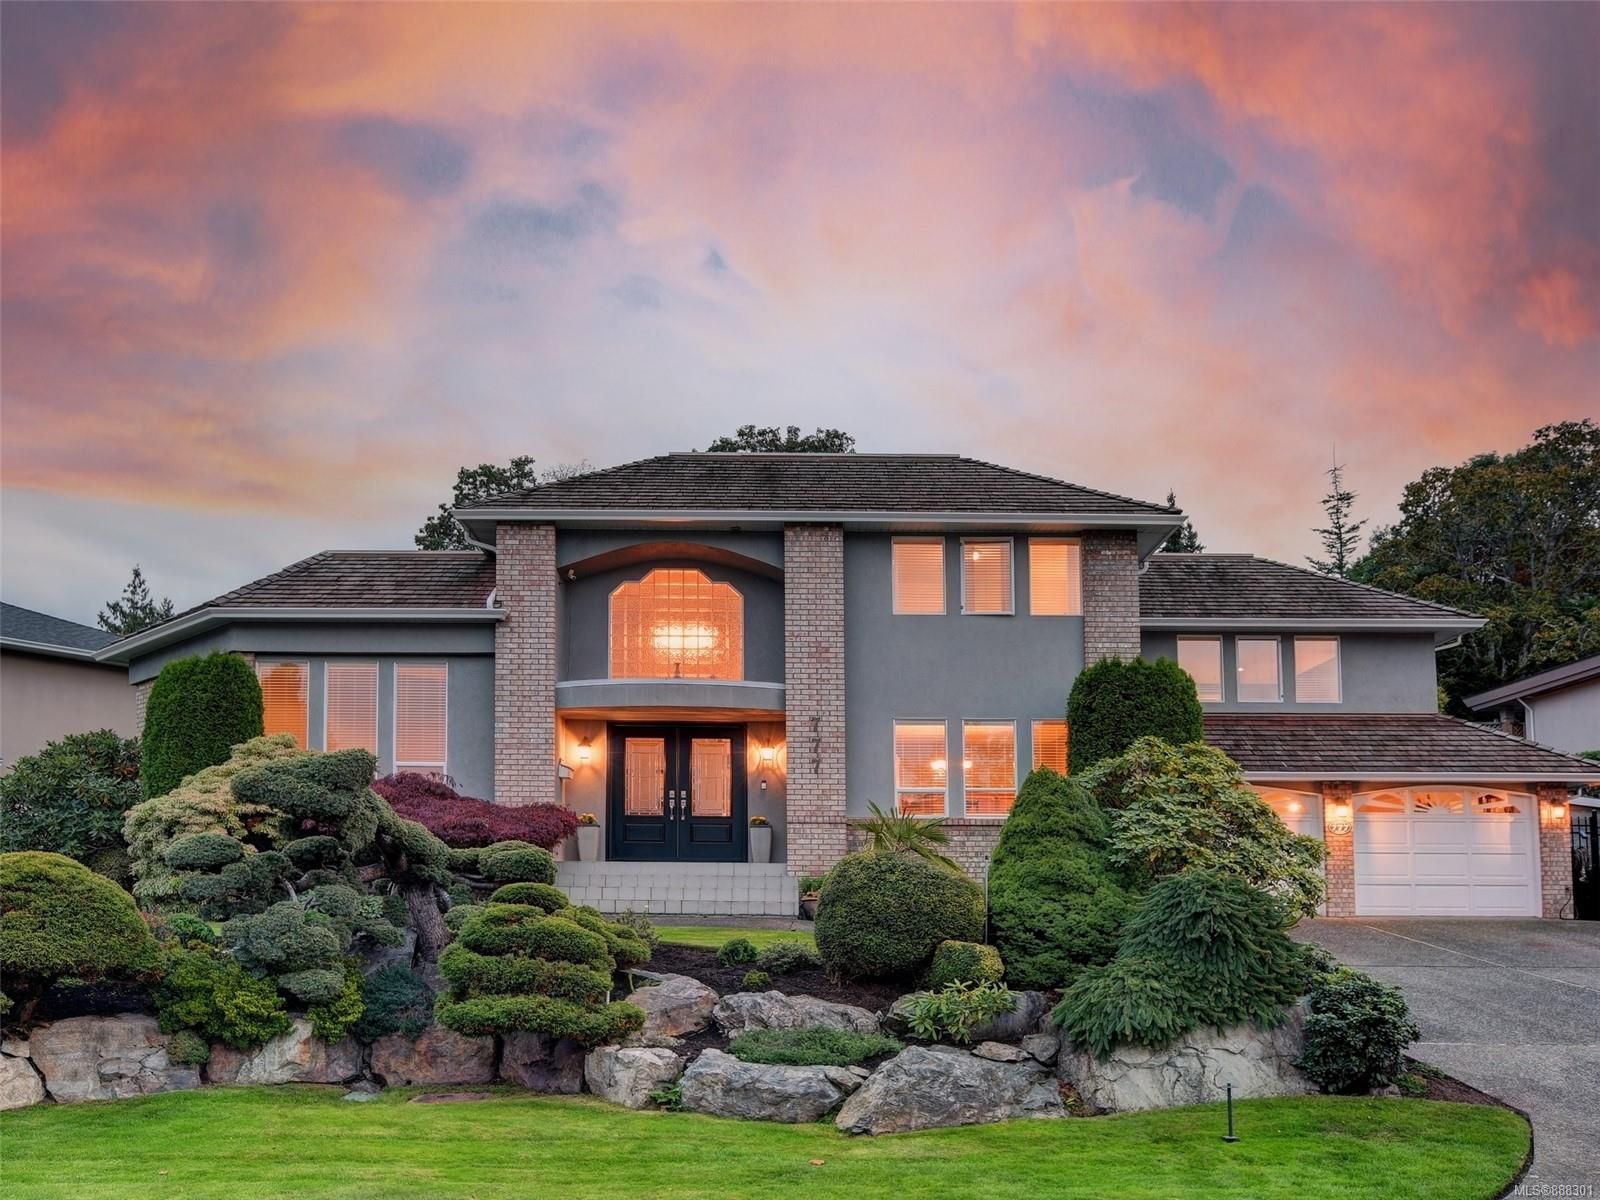 Main Photo: 777 Wesley Crt in : SE Cordova Bay House for sale (Saanich East)  : MLS®# 888301